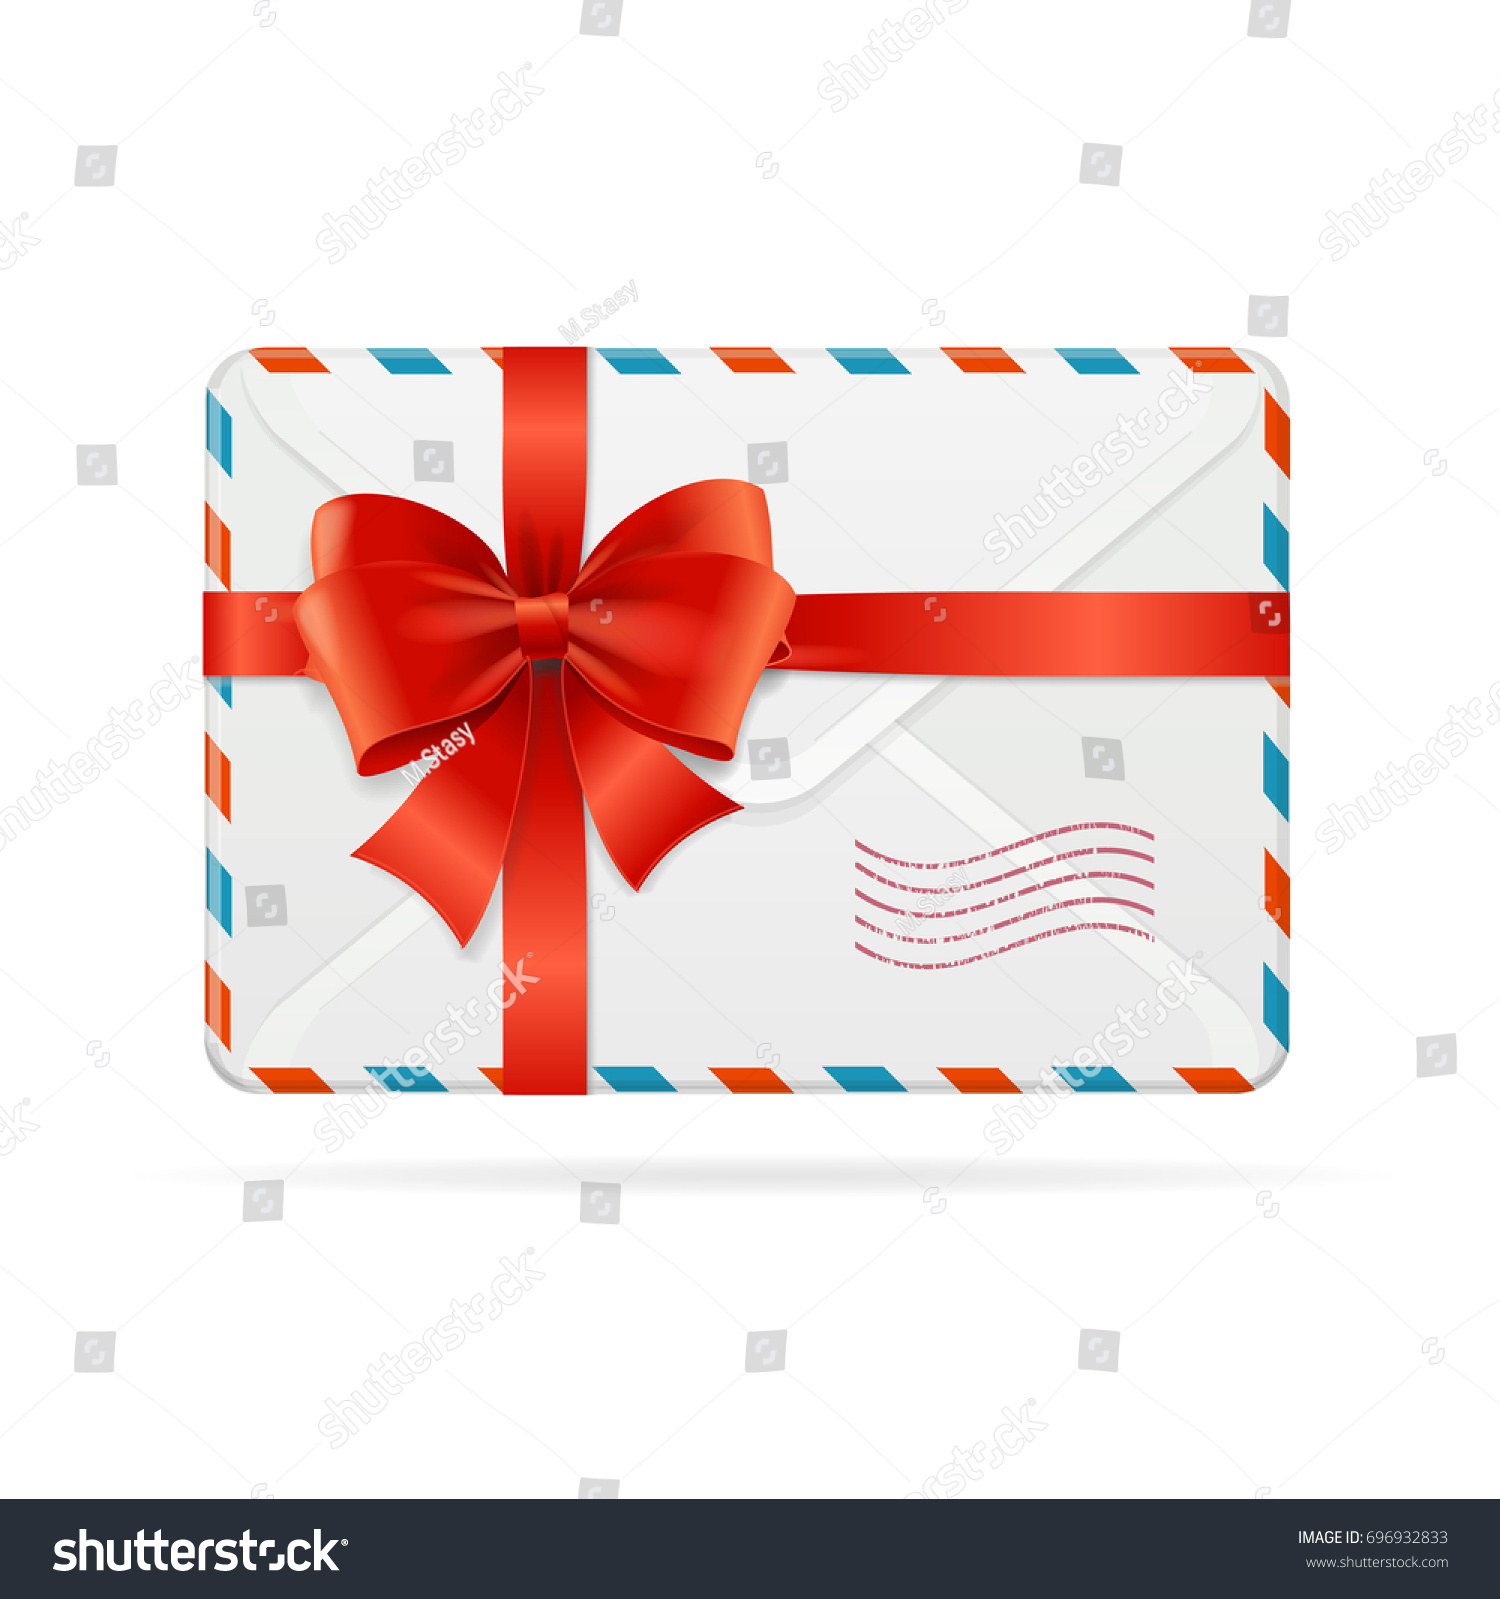 Pest Control In Bow Mail: Mail Envelope Delivery Red Bow Ribbon Stock Illustration